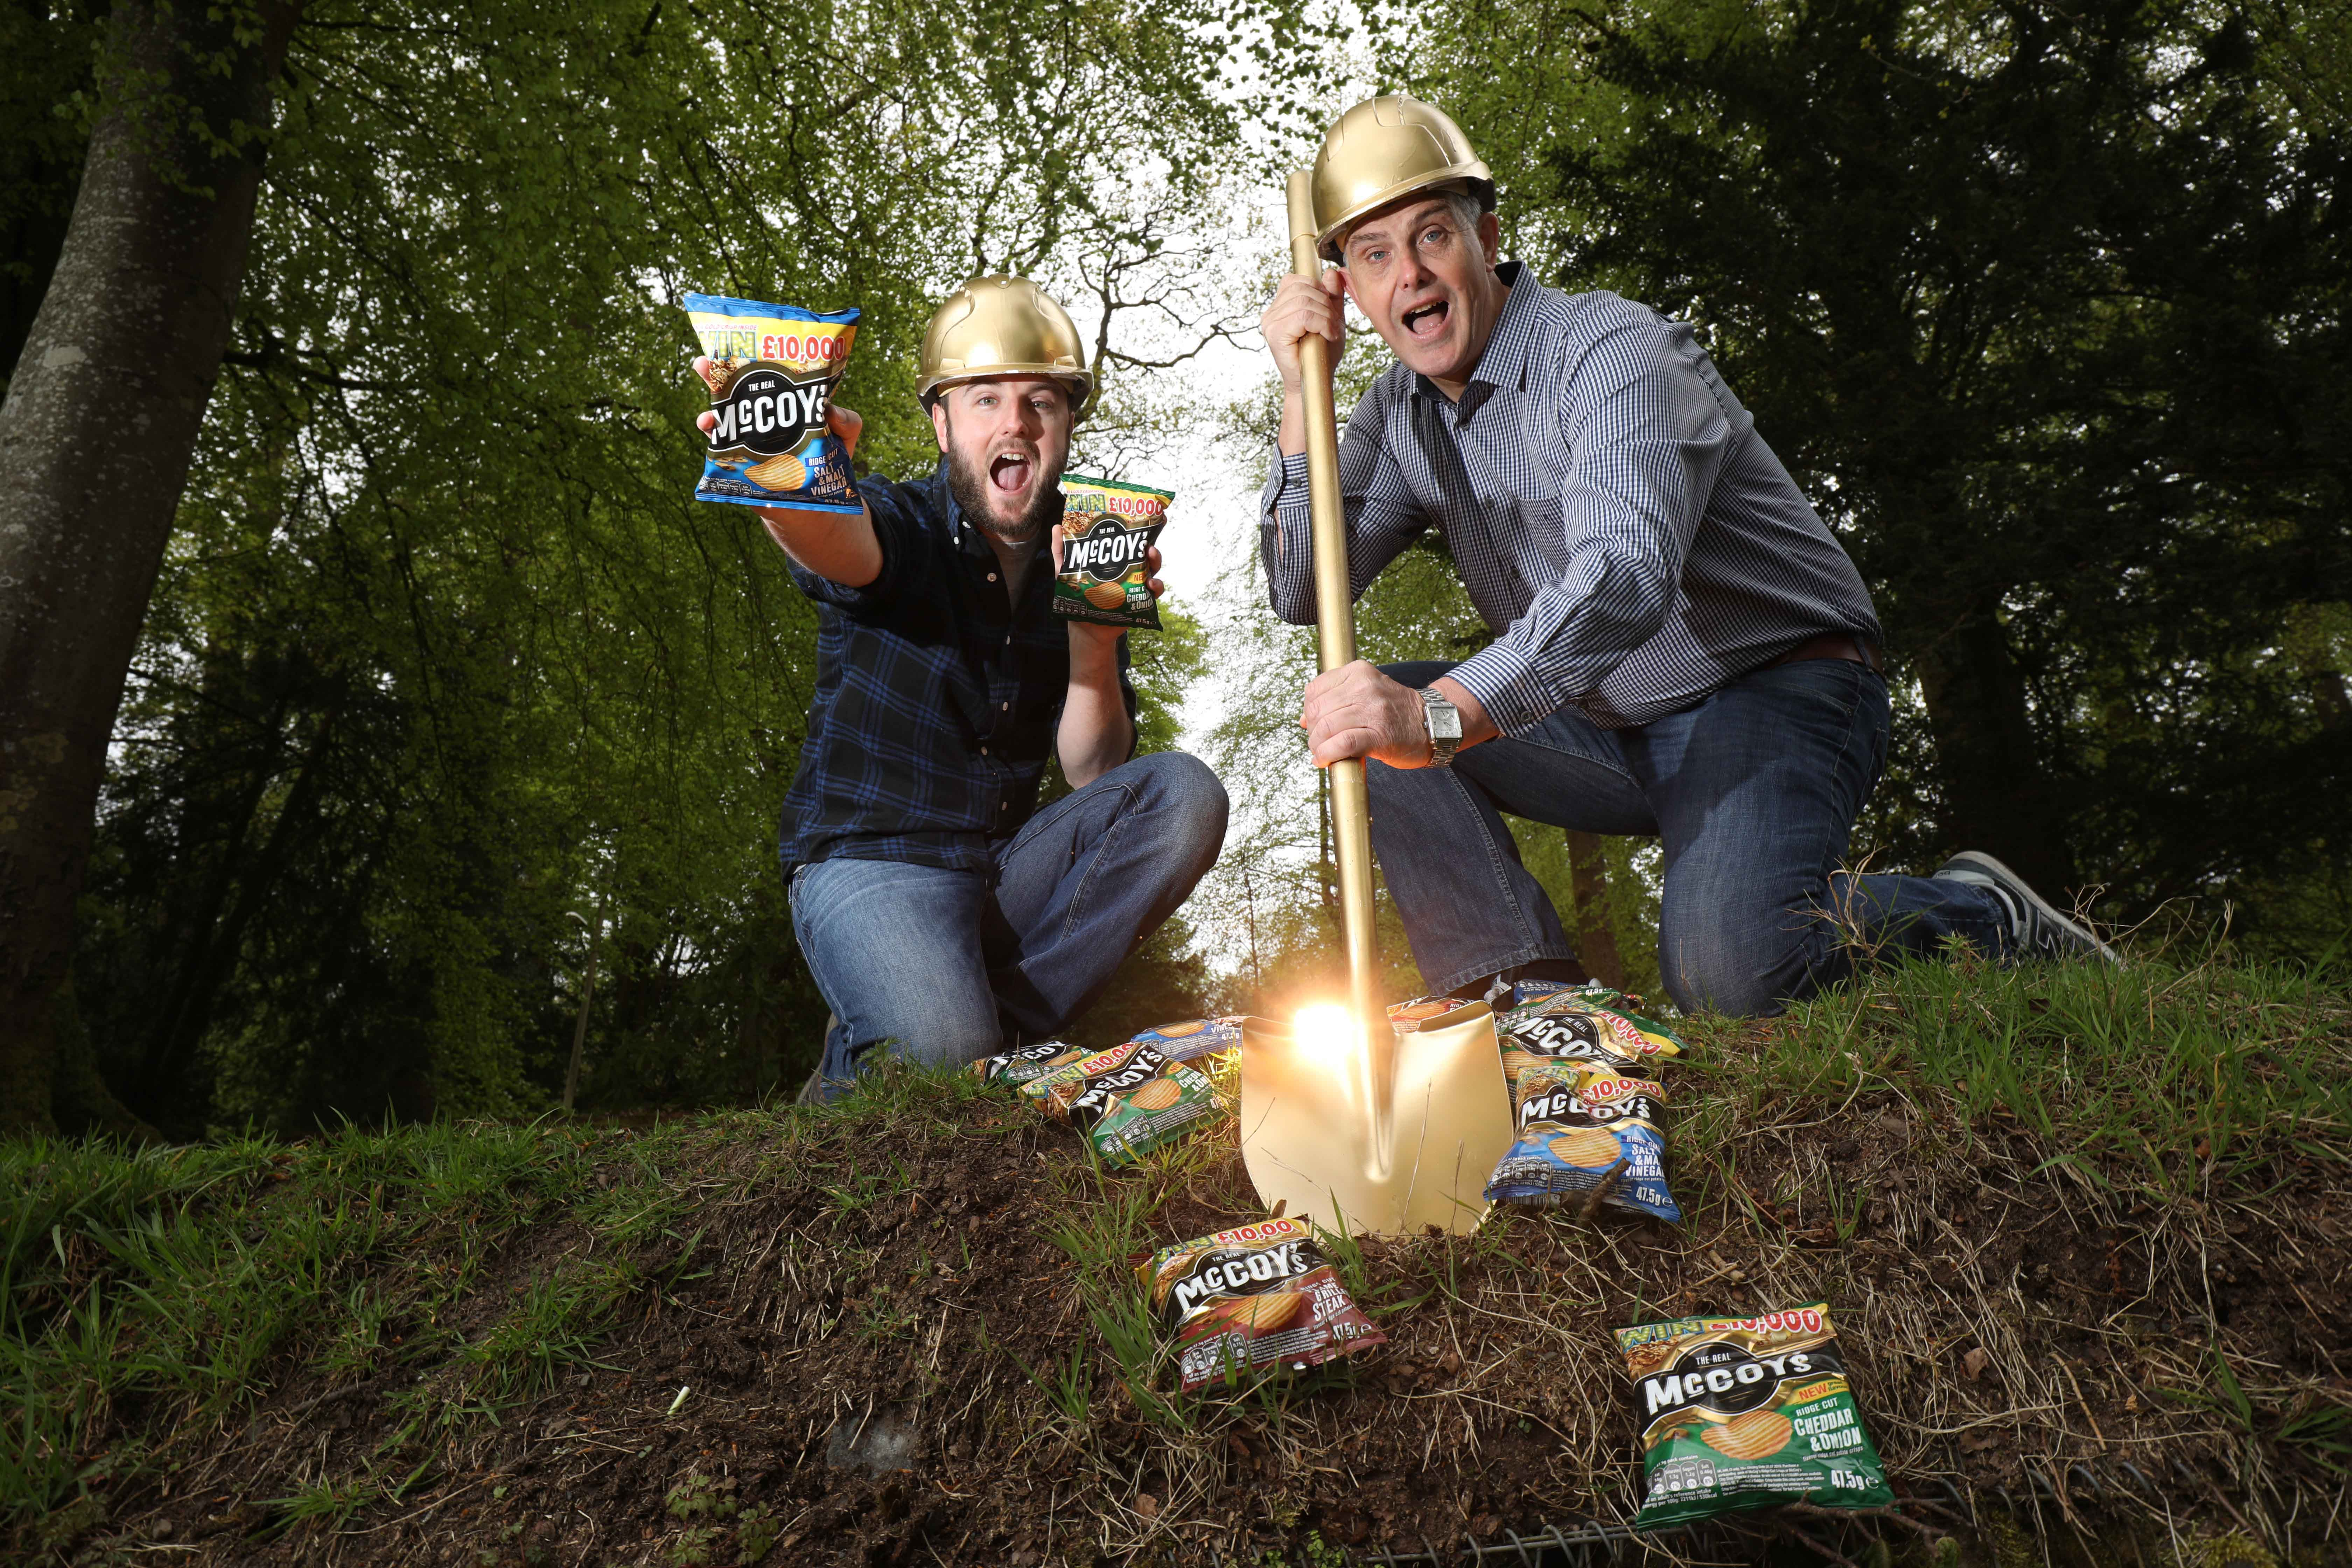 THERE'S GOLD IN THEM THAR CRISPS: John Baxter and Ricky Watts from KP Snacks launch McCoy's Crisps' brand new national 'Dig For Gold' campaign. Ten golden crisps, each worth a tasty £10,000, will be hidden in ten random packs of McCoy's, the best-selling ridged crisp in Northern Ireland, between now and July 31. In addition to people winning a very tasty amount of money, charities across the UK will benefit as the retailers that sell the winning golden crisp bags will each donate £1,000 to a charity of their choice. The golden crisps can be found in 'Dig For Gold' branded packs of McCoy's Flame Grilled Steak, Salt & Vinegar, Cheddar and Onion, Mexican Chilli, Sizzling King Prawn, Thai Sweet Chicken along with McCoy's Chips Salt and Vinegar and Curry Sauce.